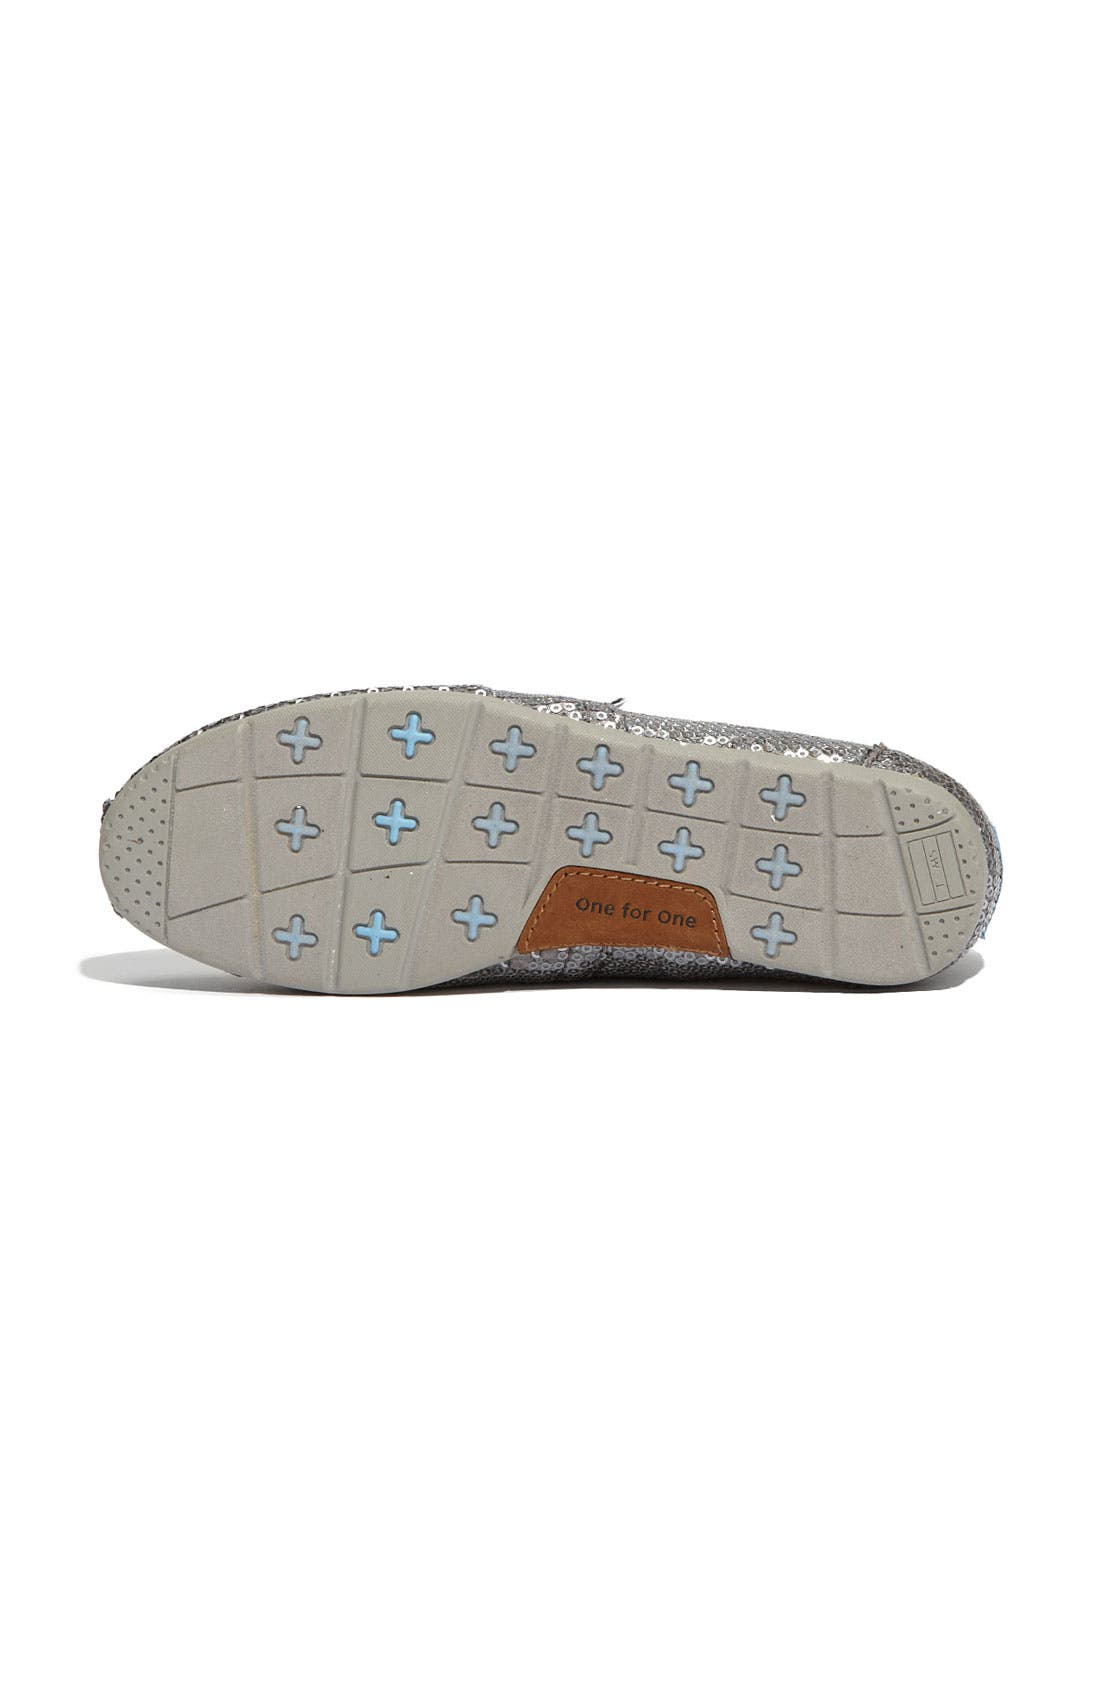 Alternate Image 4  - TOMS 'Classic - Sequins' Slip-On (Women) (Nordstrom Exclusive)